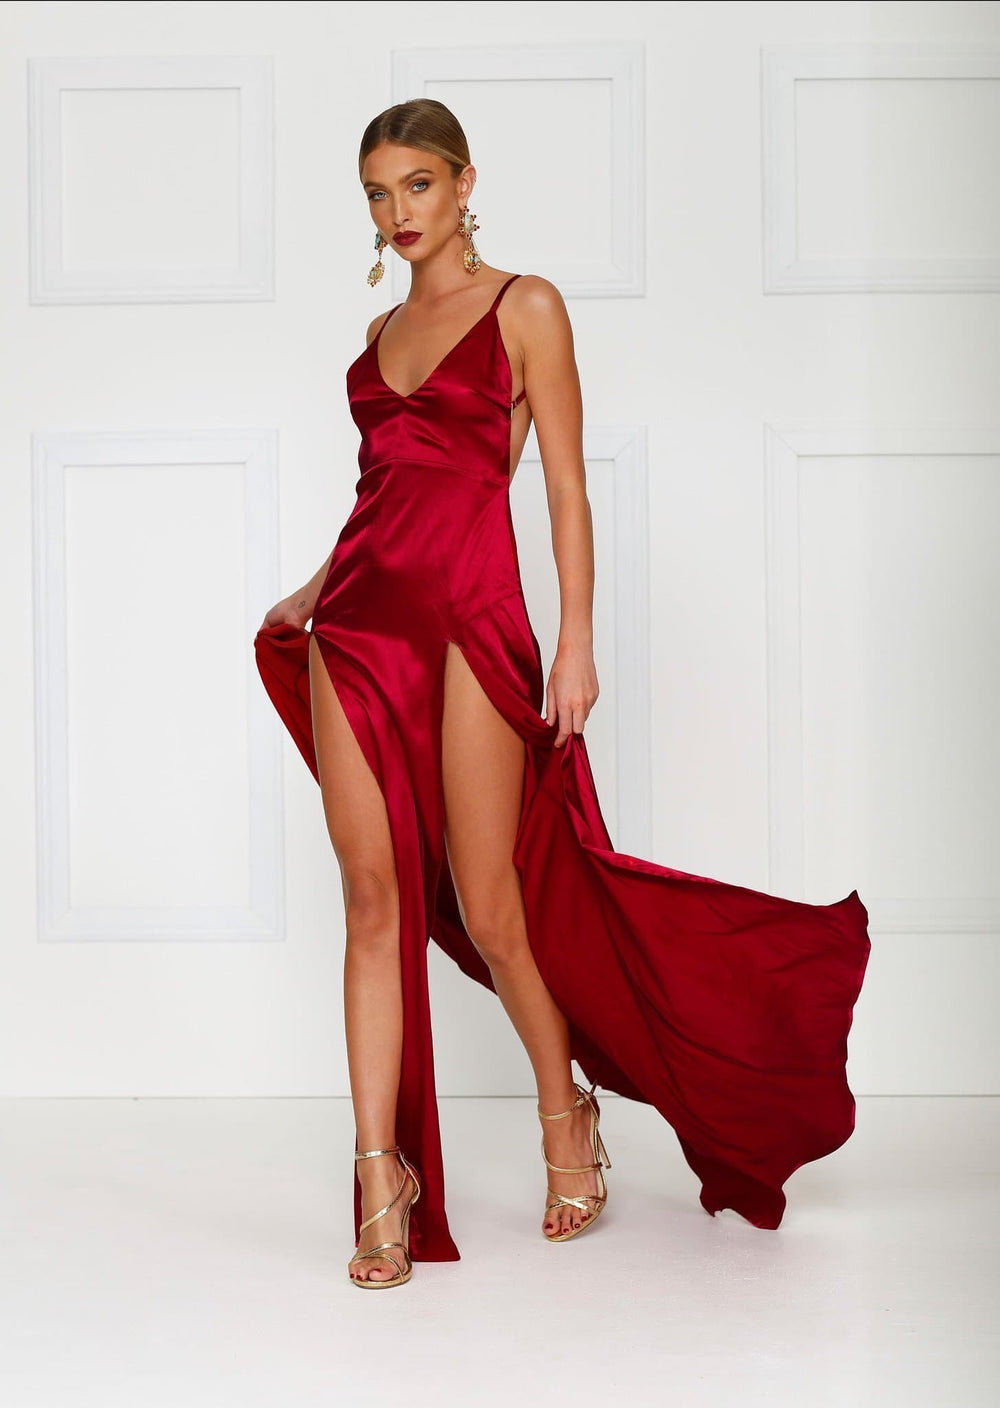 Alexis - Wine Red Satin Gown with V Neckline & Thigh High Slits